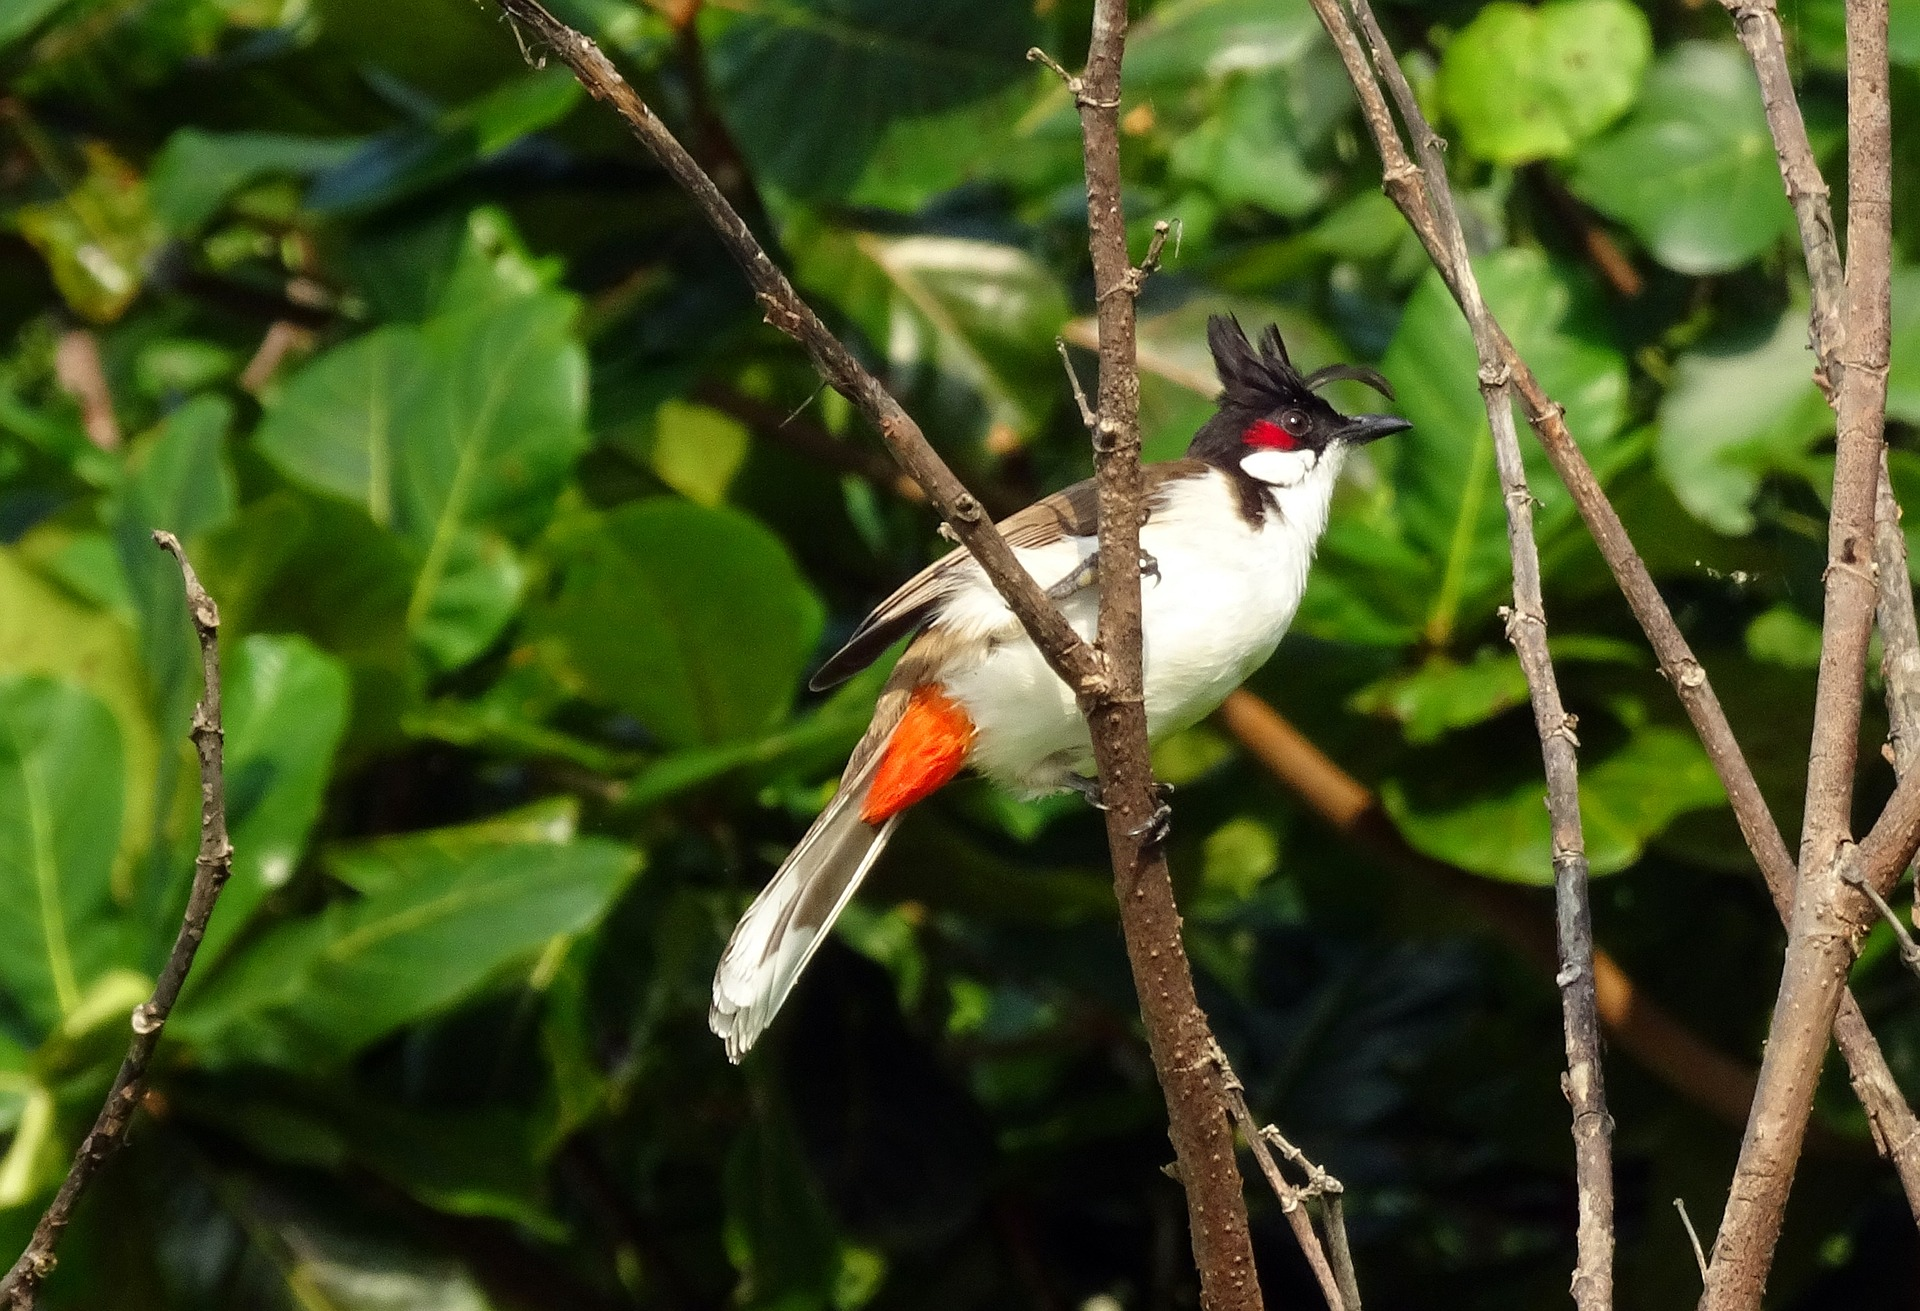 flaura and fauna in andamans